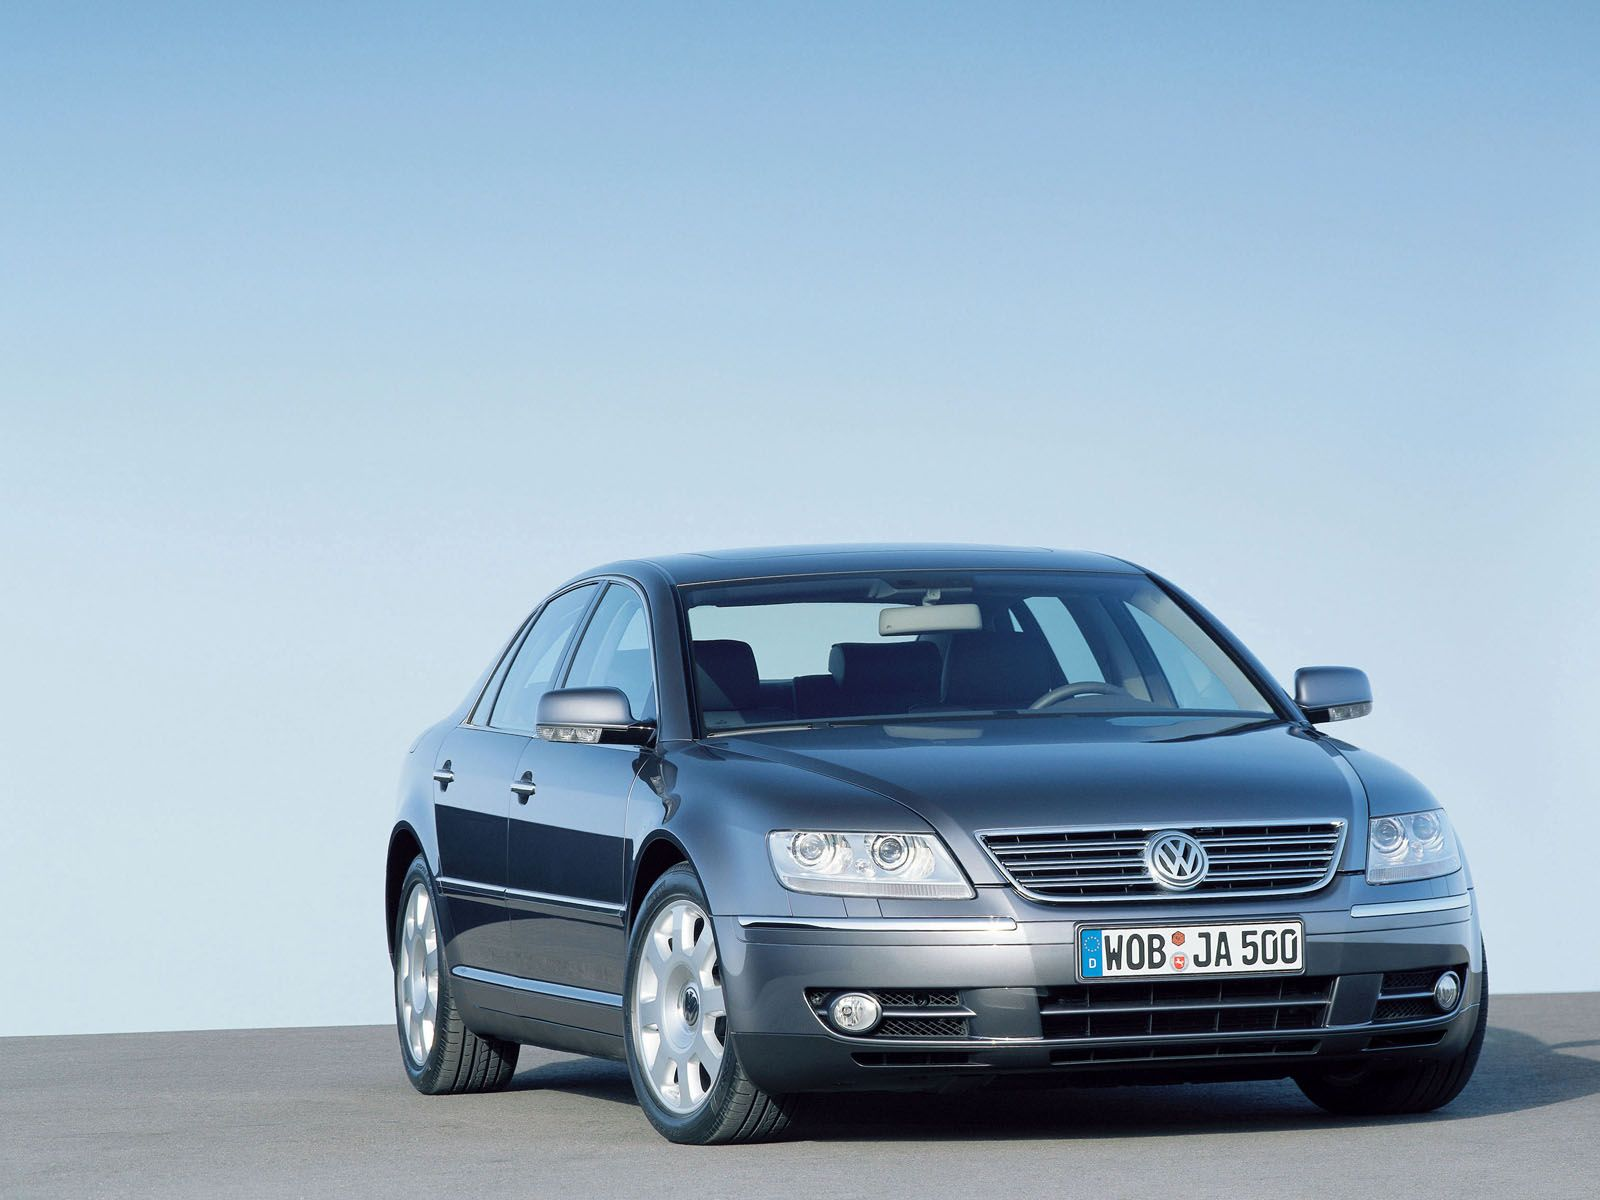 Volkswagen Phaeton photo #9663